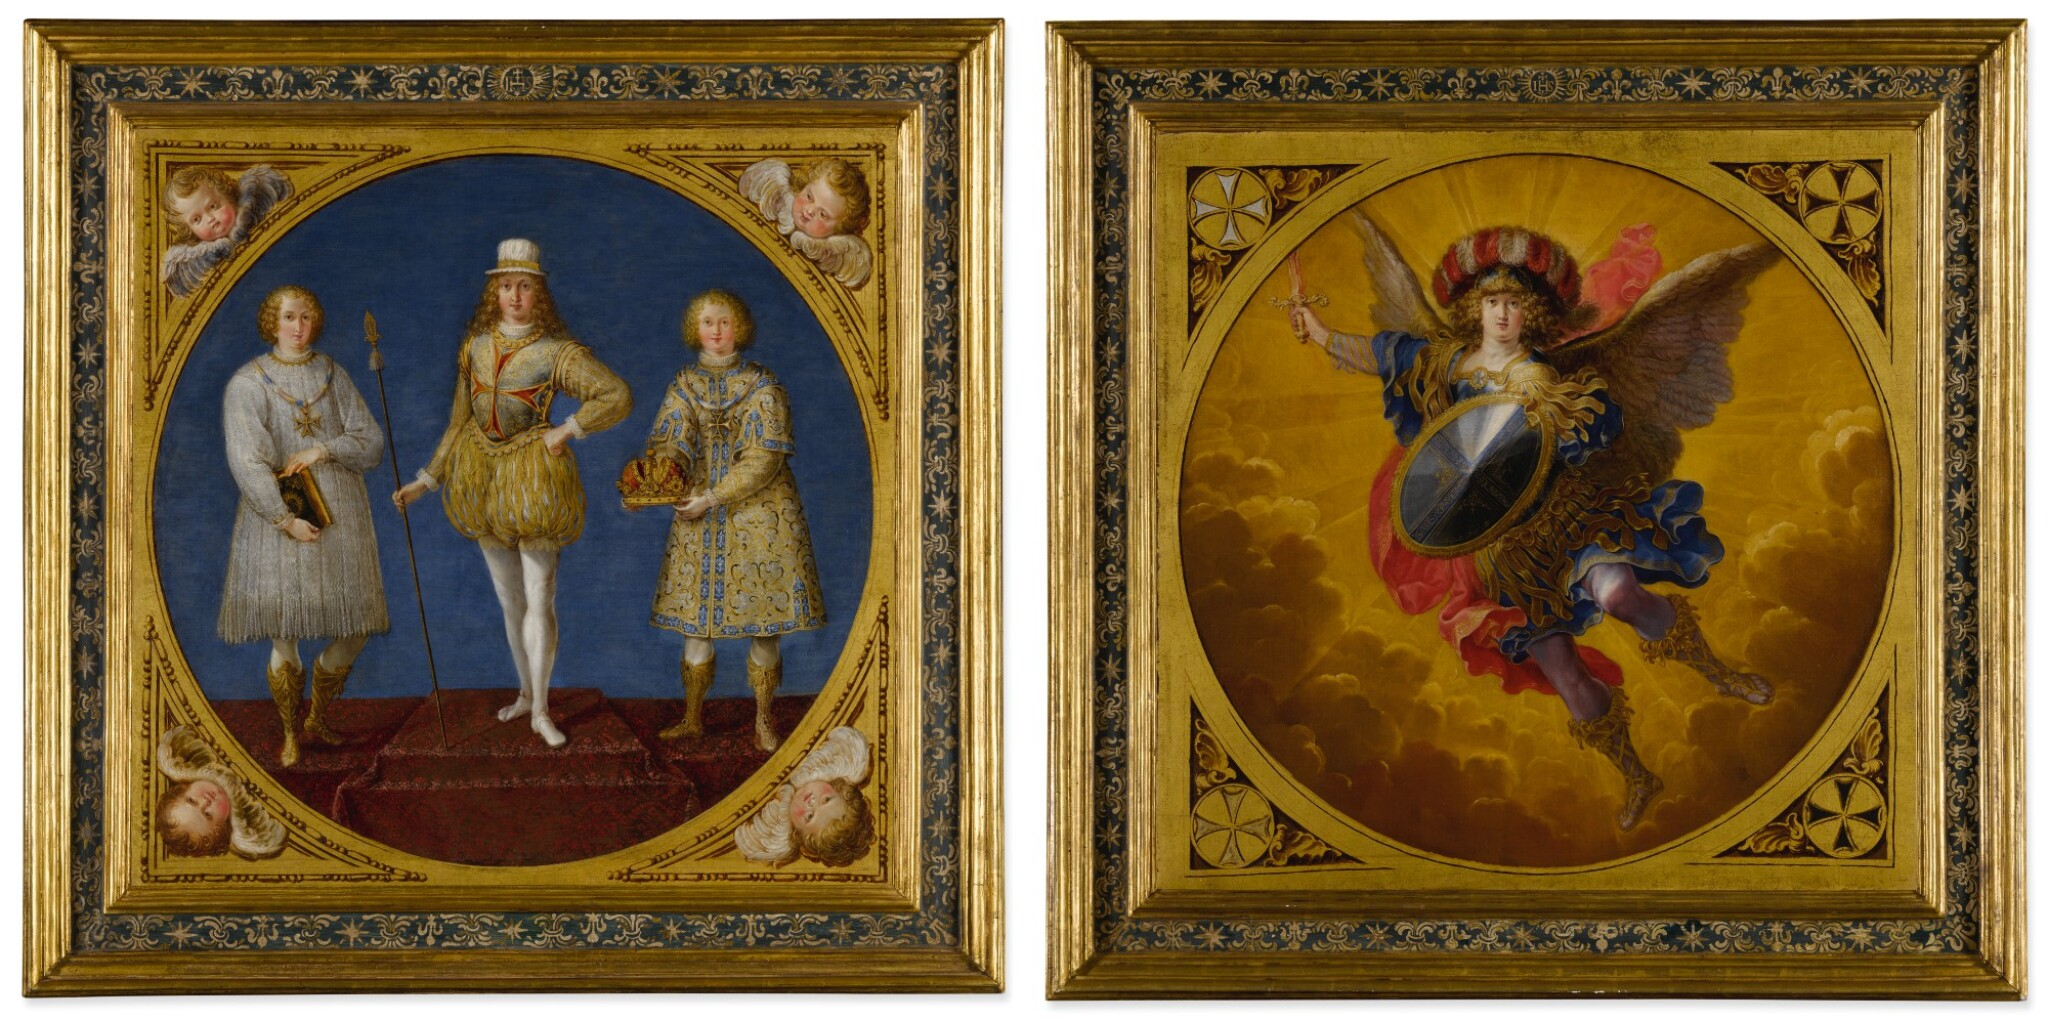 View full screen - View 1 of Lot 665. A young prince, possibly Ferdinand Karl, Archduke of Austria and Tyrol, flanked by two attendants;  The Archangel Saint Michael, wearing a plumed helmet with the colors of Austria.